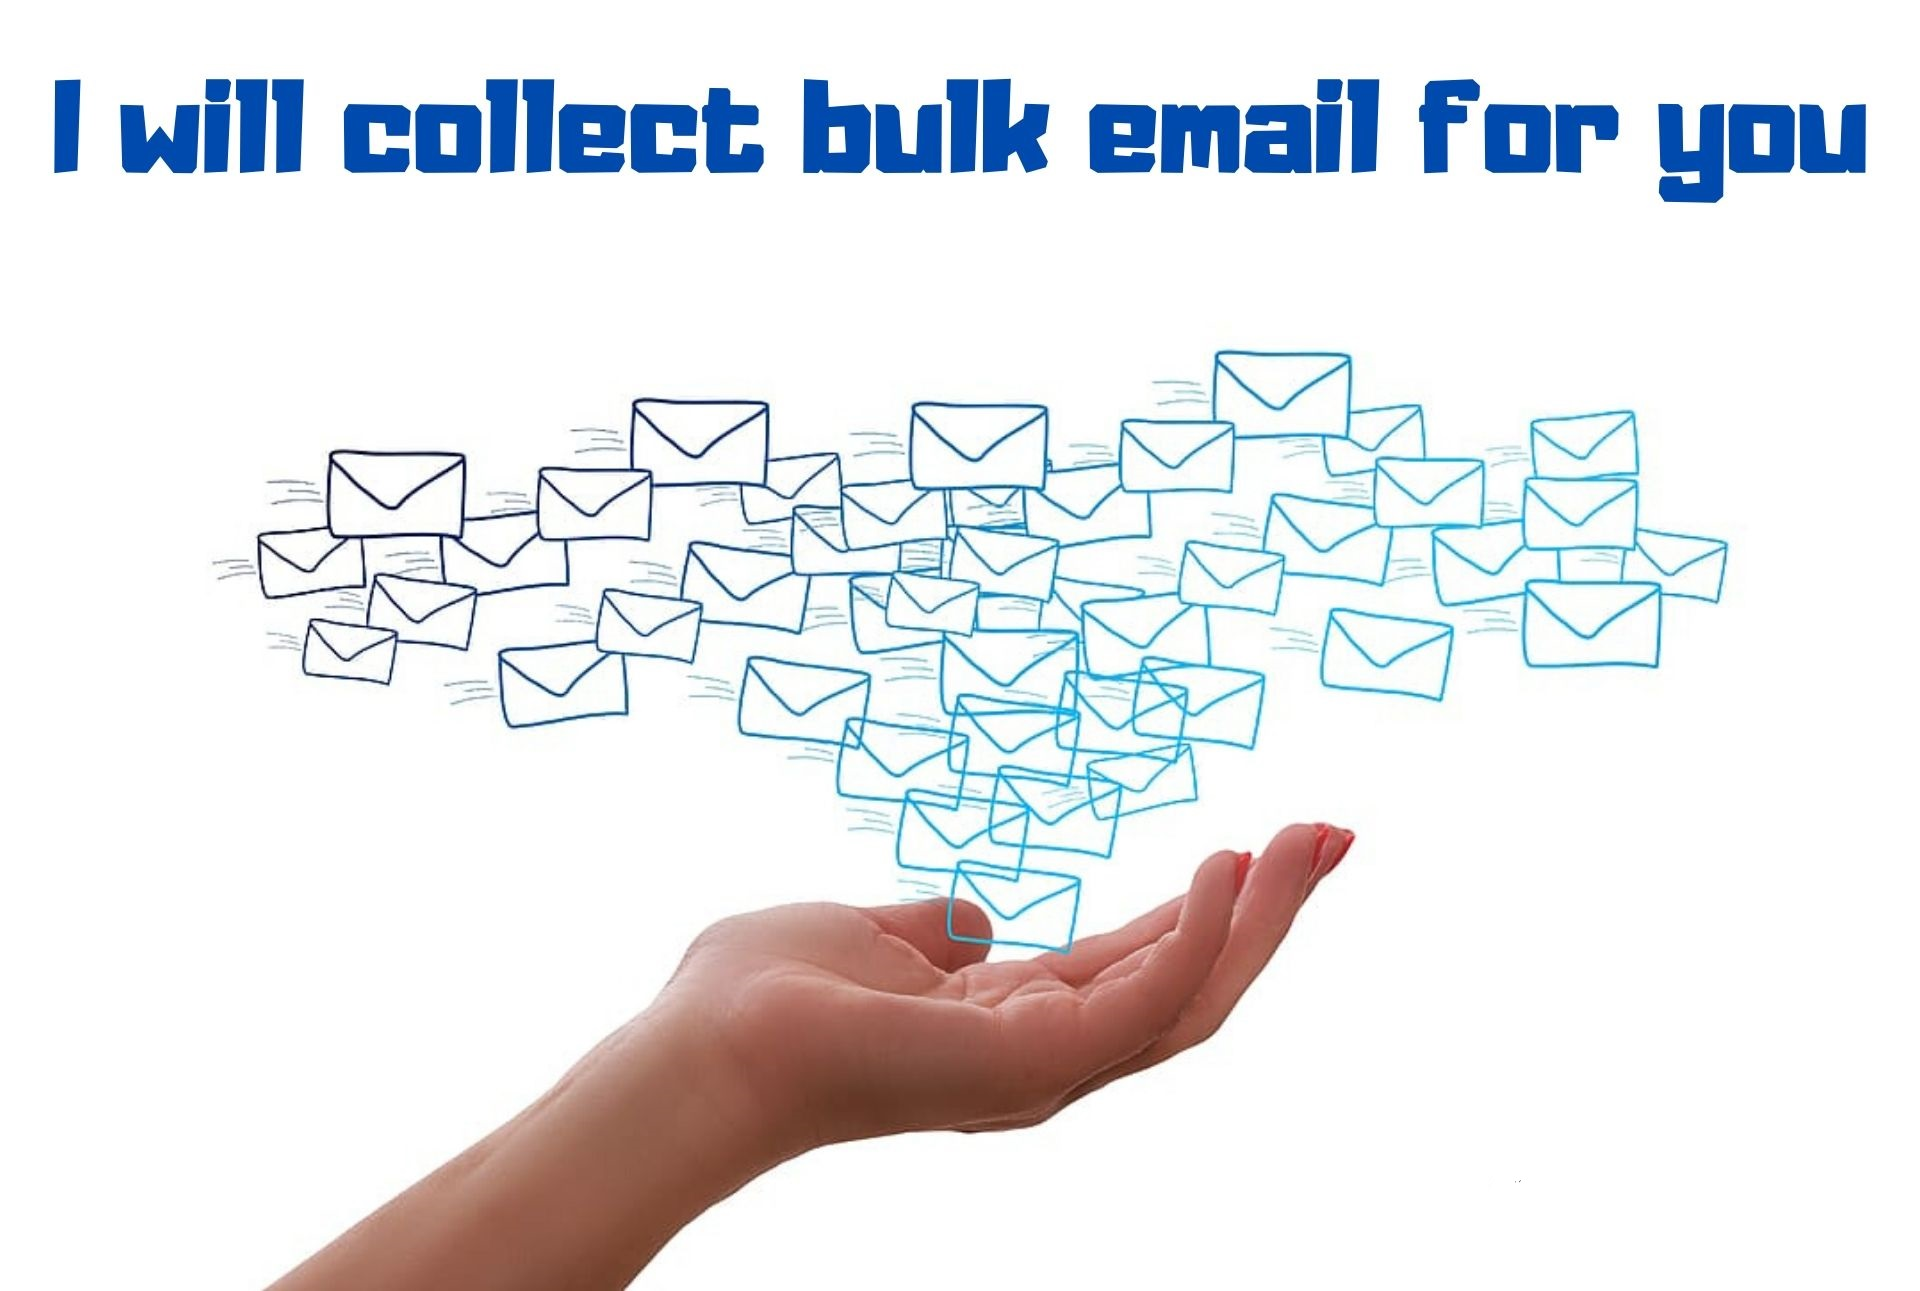 I will collect 1000 targeted bulk email for you